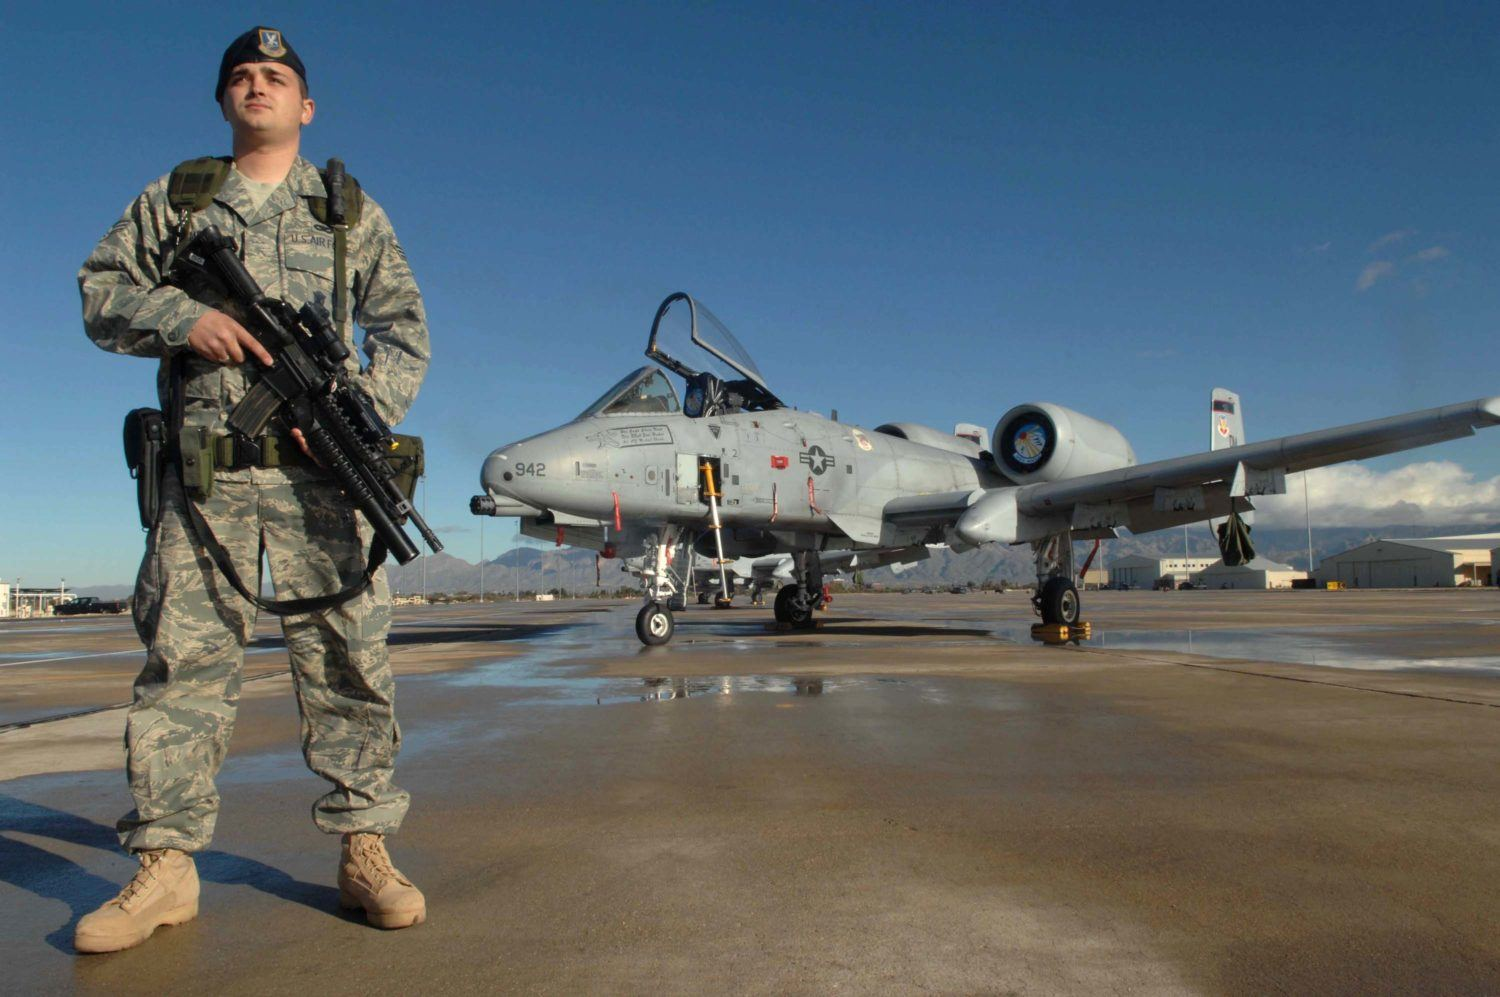 U.S. Airforce Awards $1.5M Contract to NeuroFlow to Increase Mental Healthcare Access